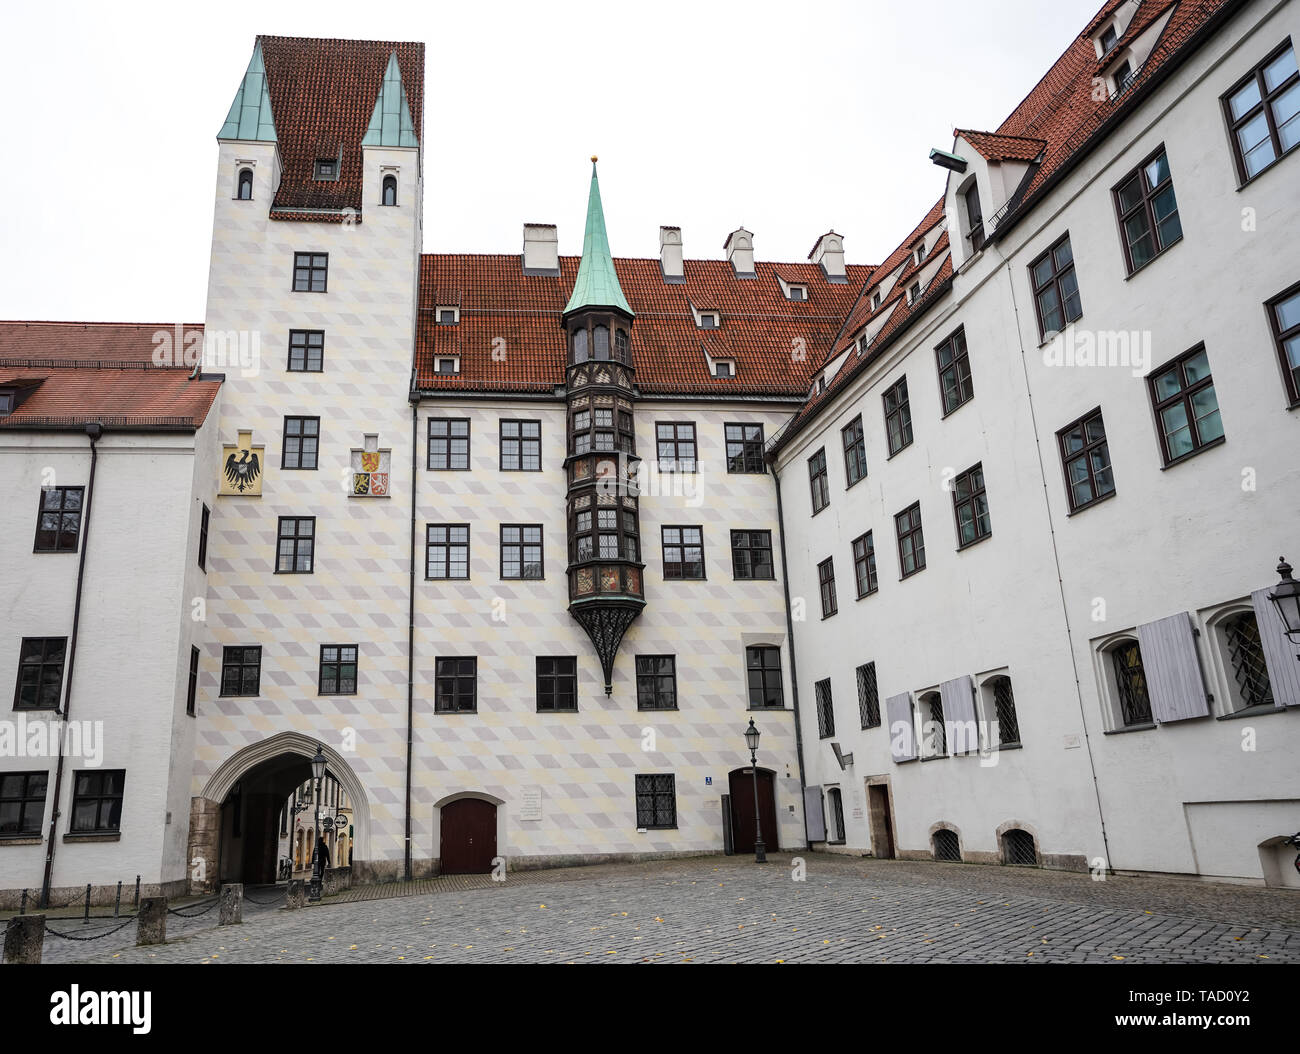 Old Court in Munich, Germany. The Court is the former residence of Louis IV, Holy Roman Emperor. - Stock Image